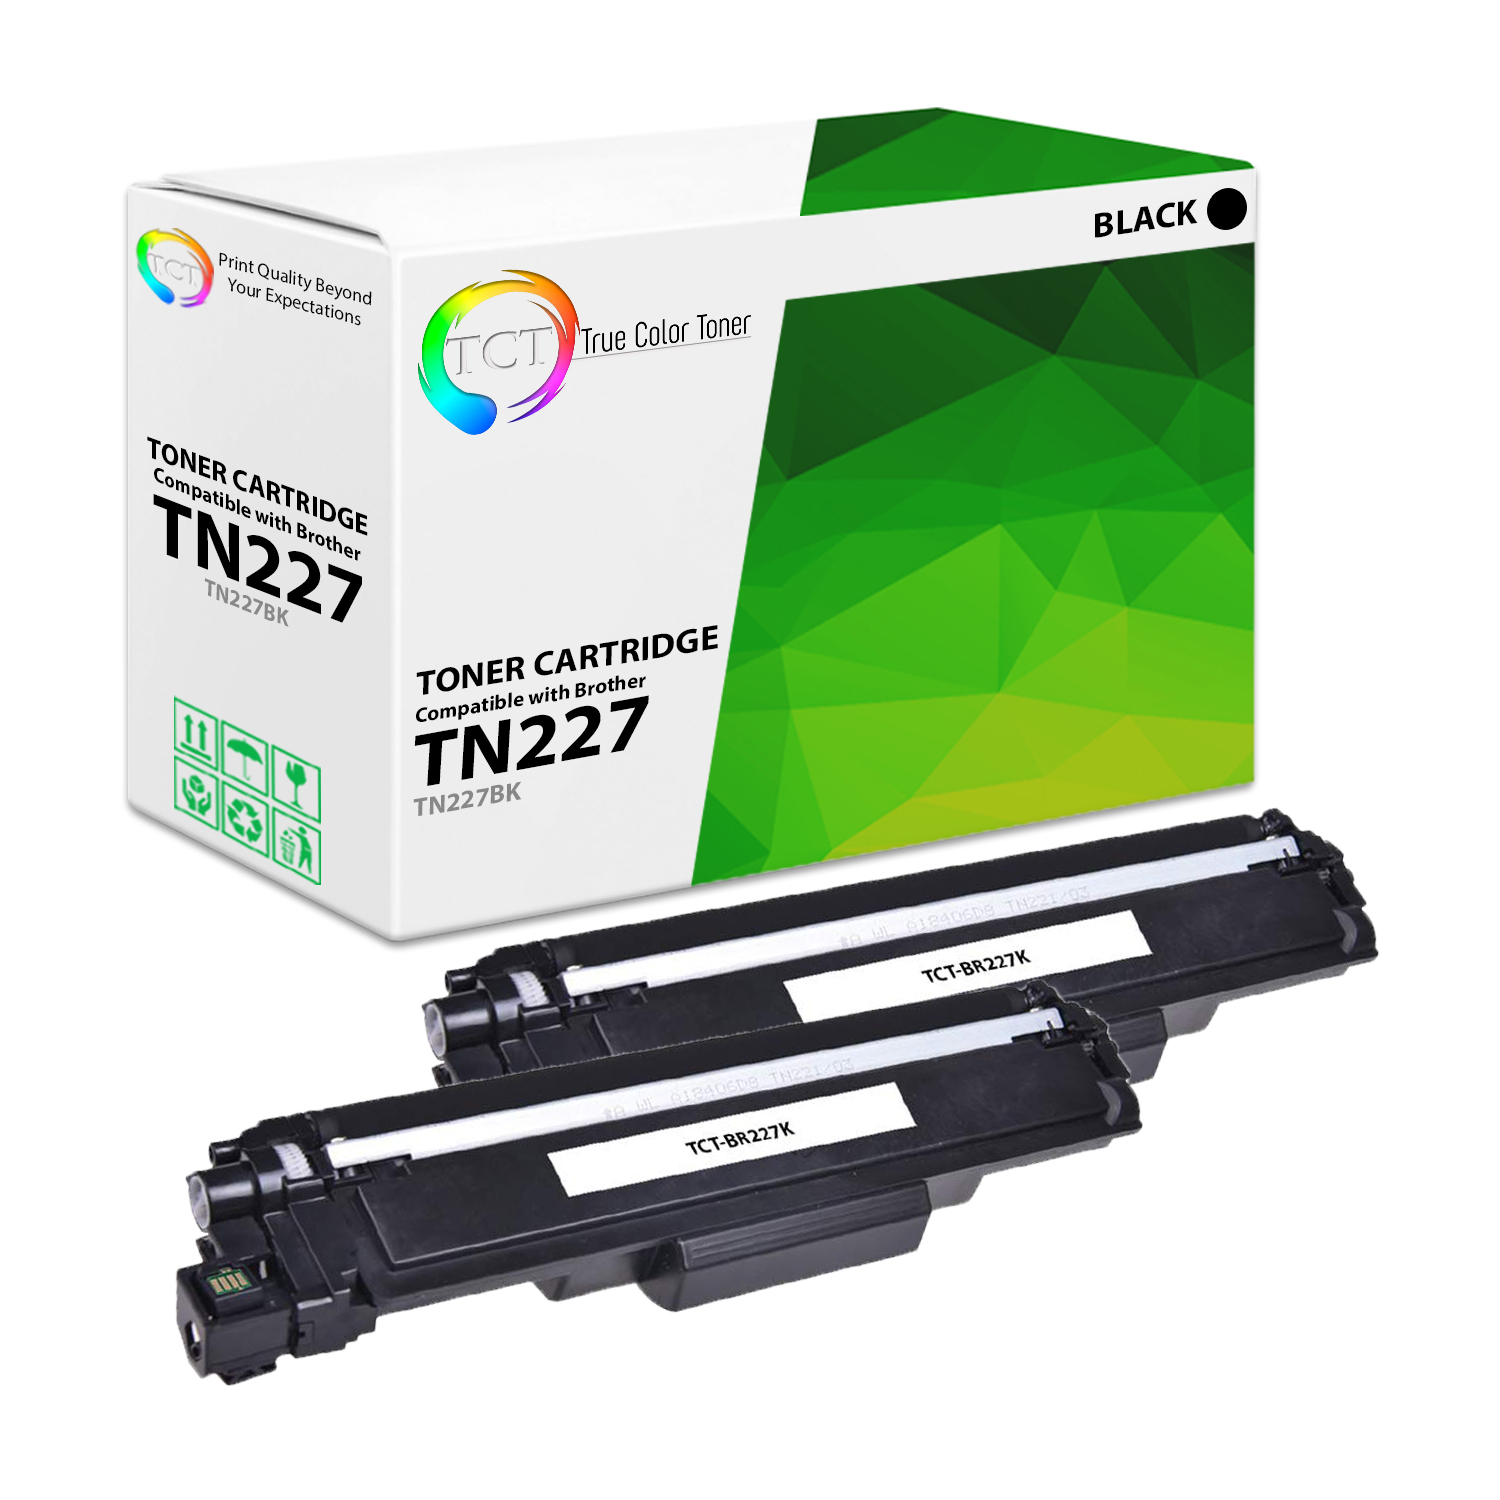 US 5 PK TN223 BLACK /& COLORS Toner With Chip for Brother MFC-L3710CW HL-L3210CW